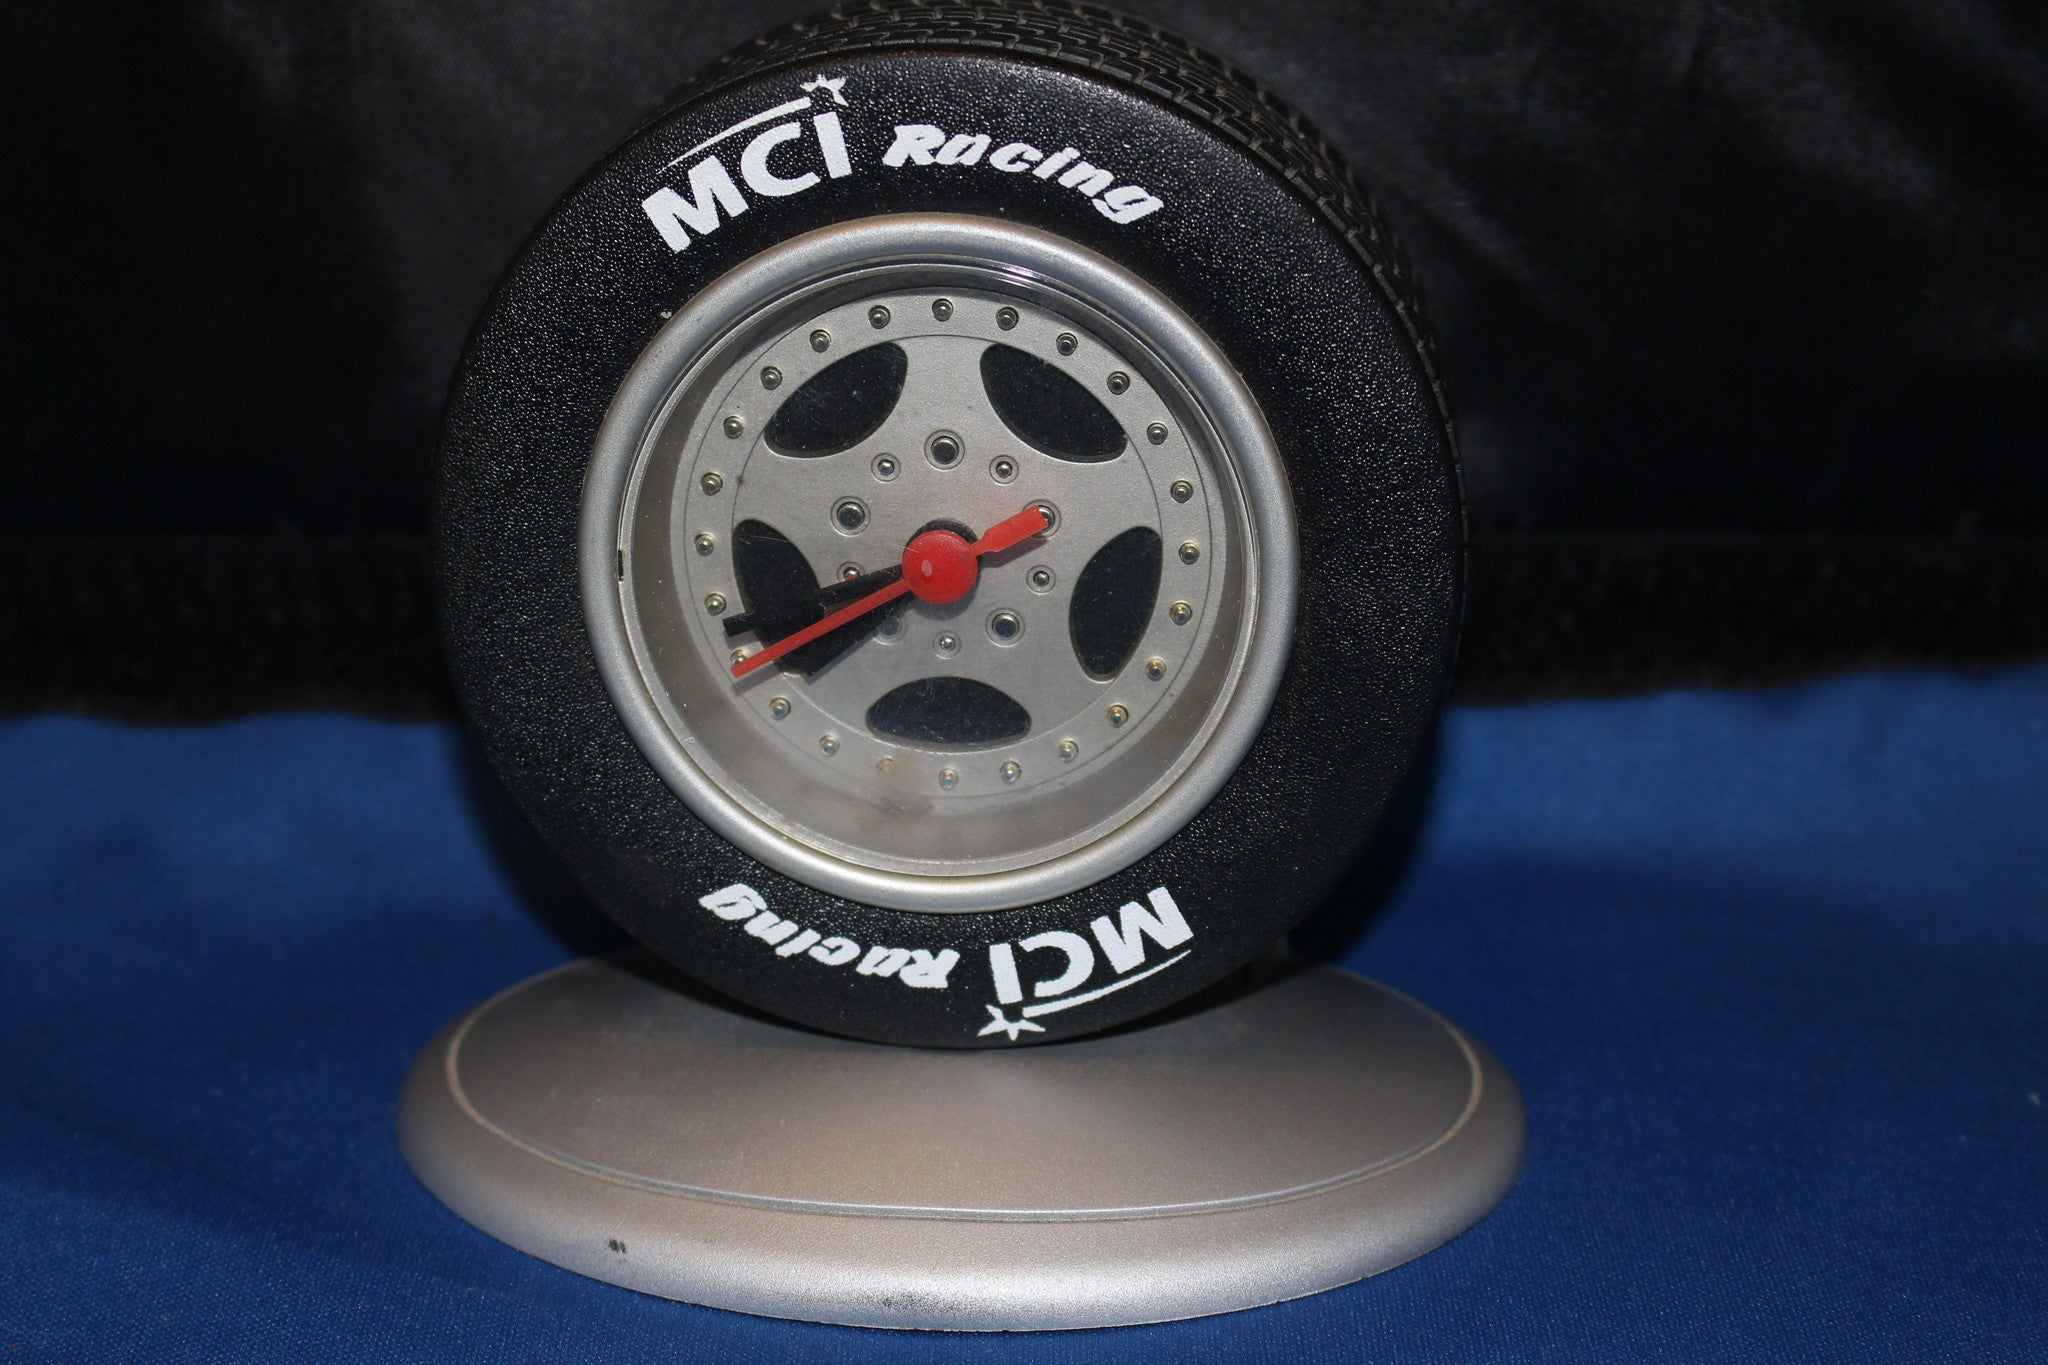 Mci racing tire desk clock vintage indy sports